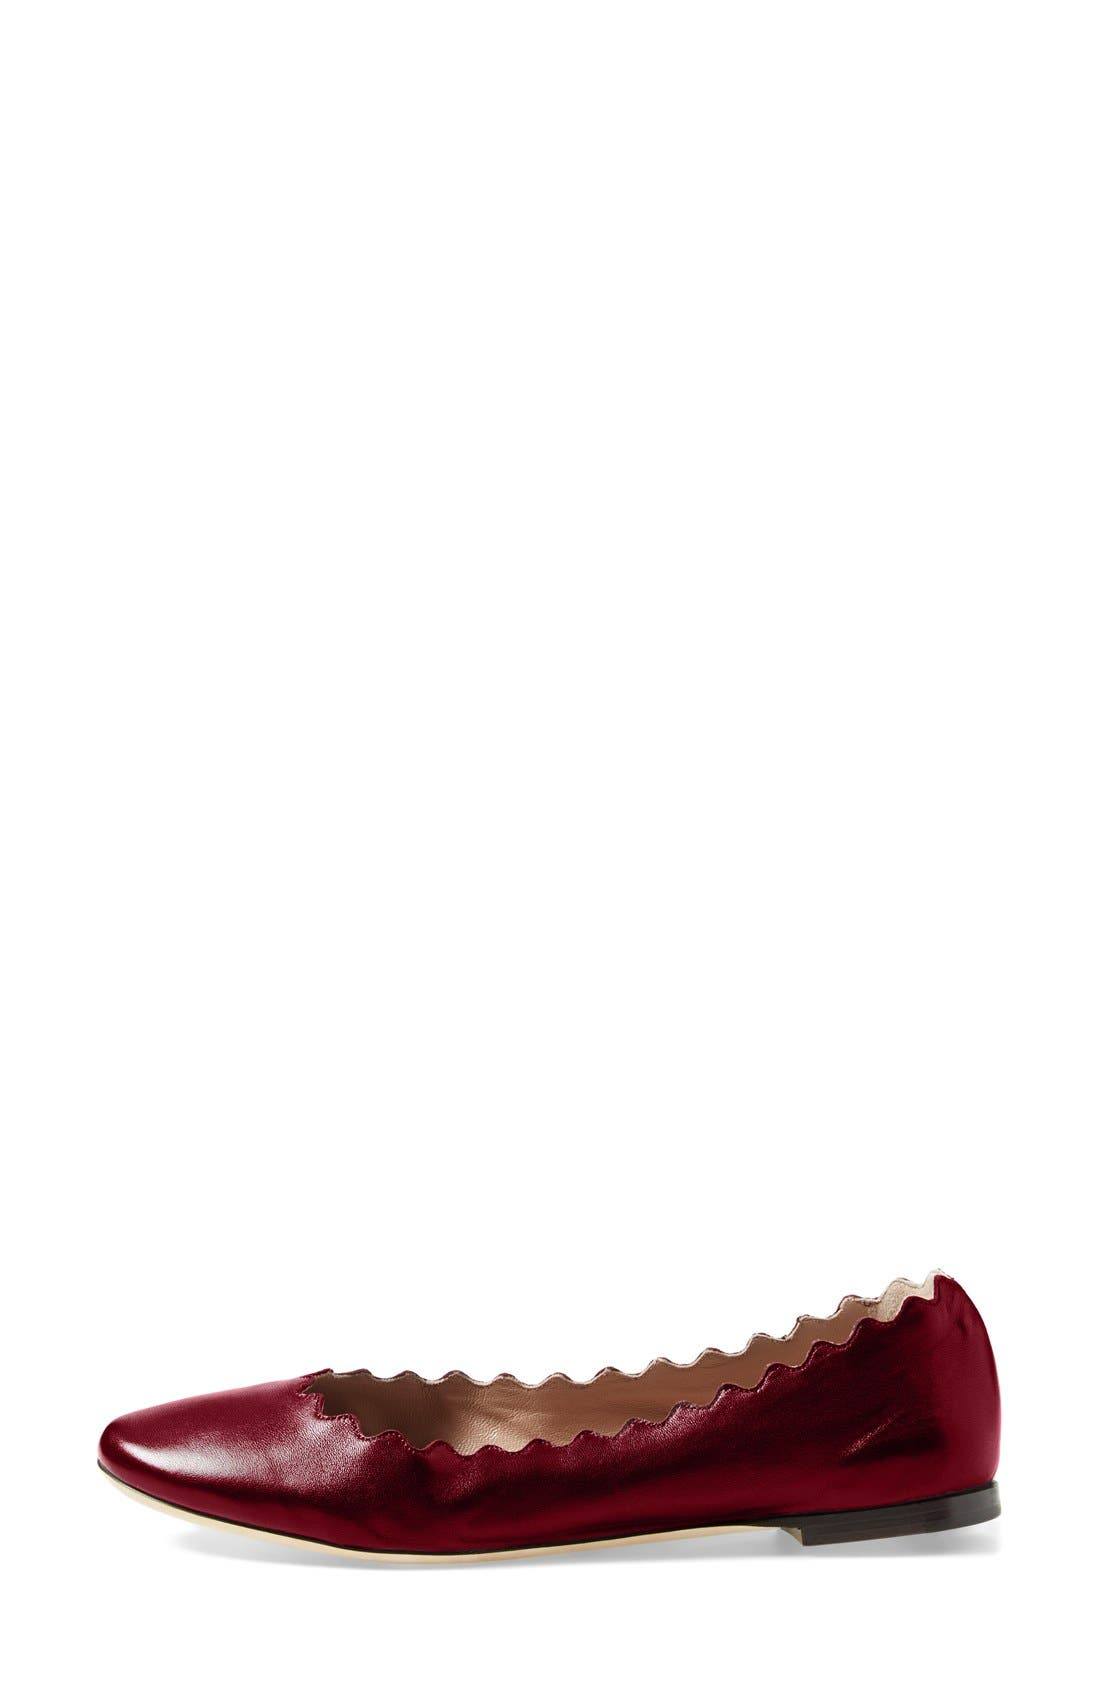 Alternate Image 4  - Chloé 'Lauren' Scalloped Ballet Flat (Women)